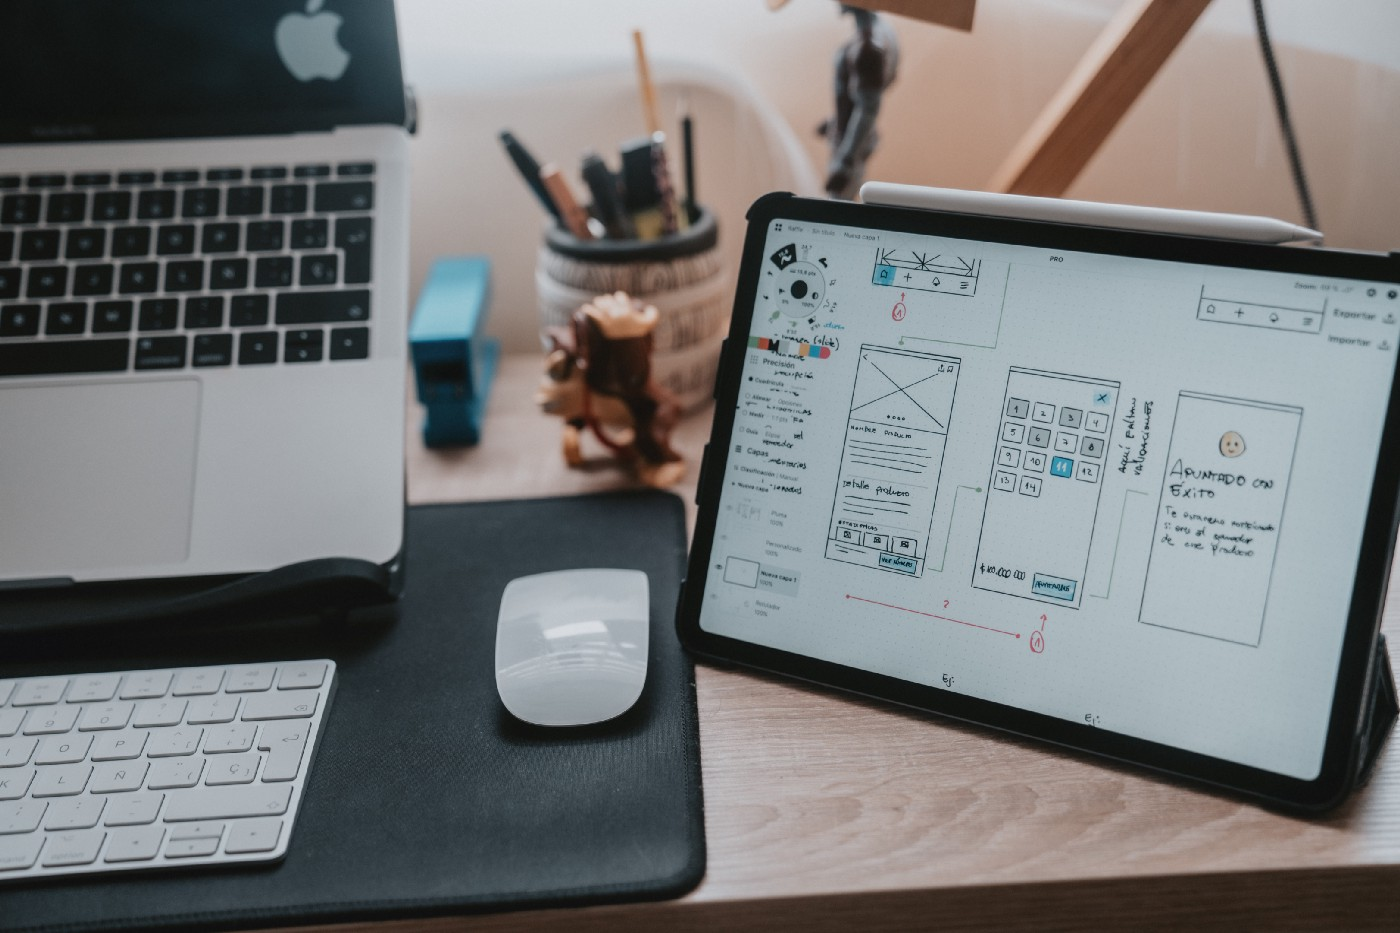 An image of a laptop and mouse sitting next to an ipad with sketches of UI screens filled with words.